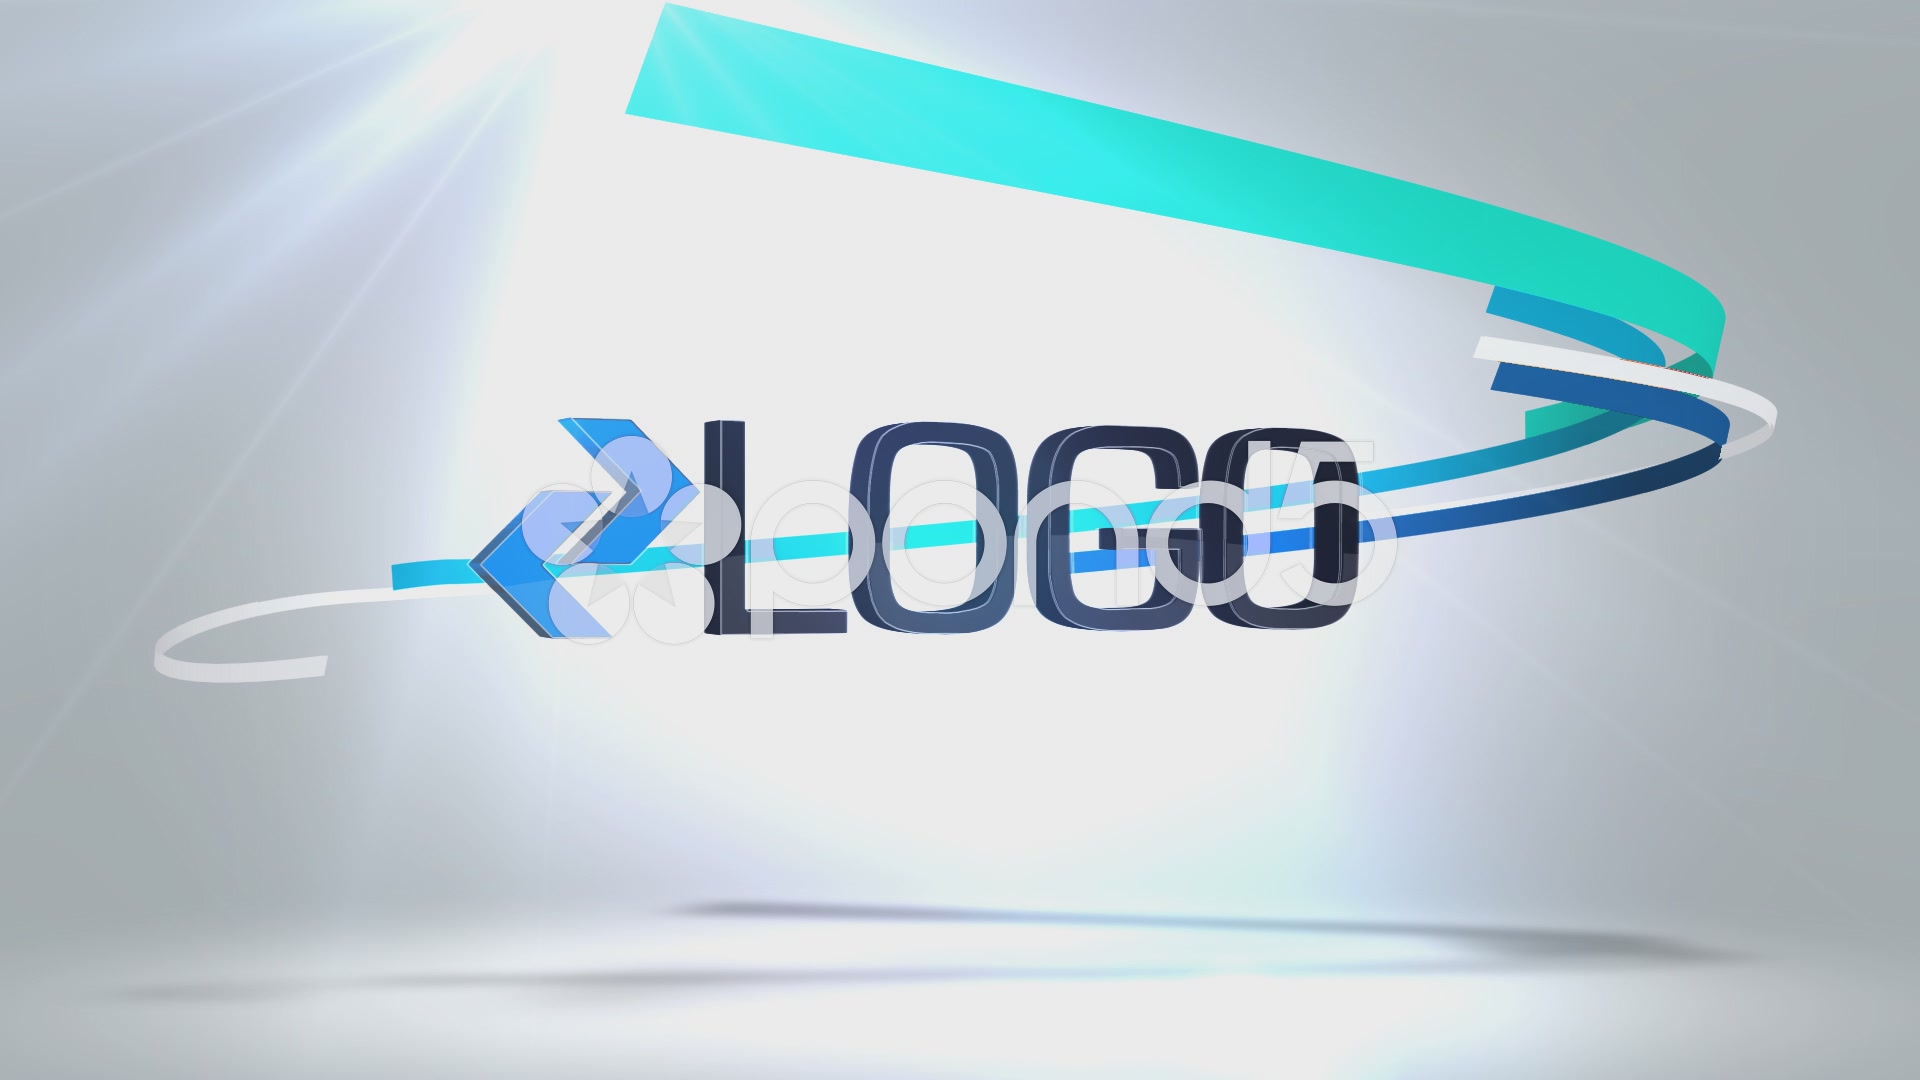 After Effects Project - Pond5 Ribbon Logo Reveal 49048723